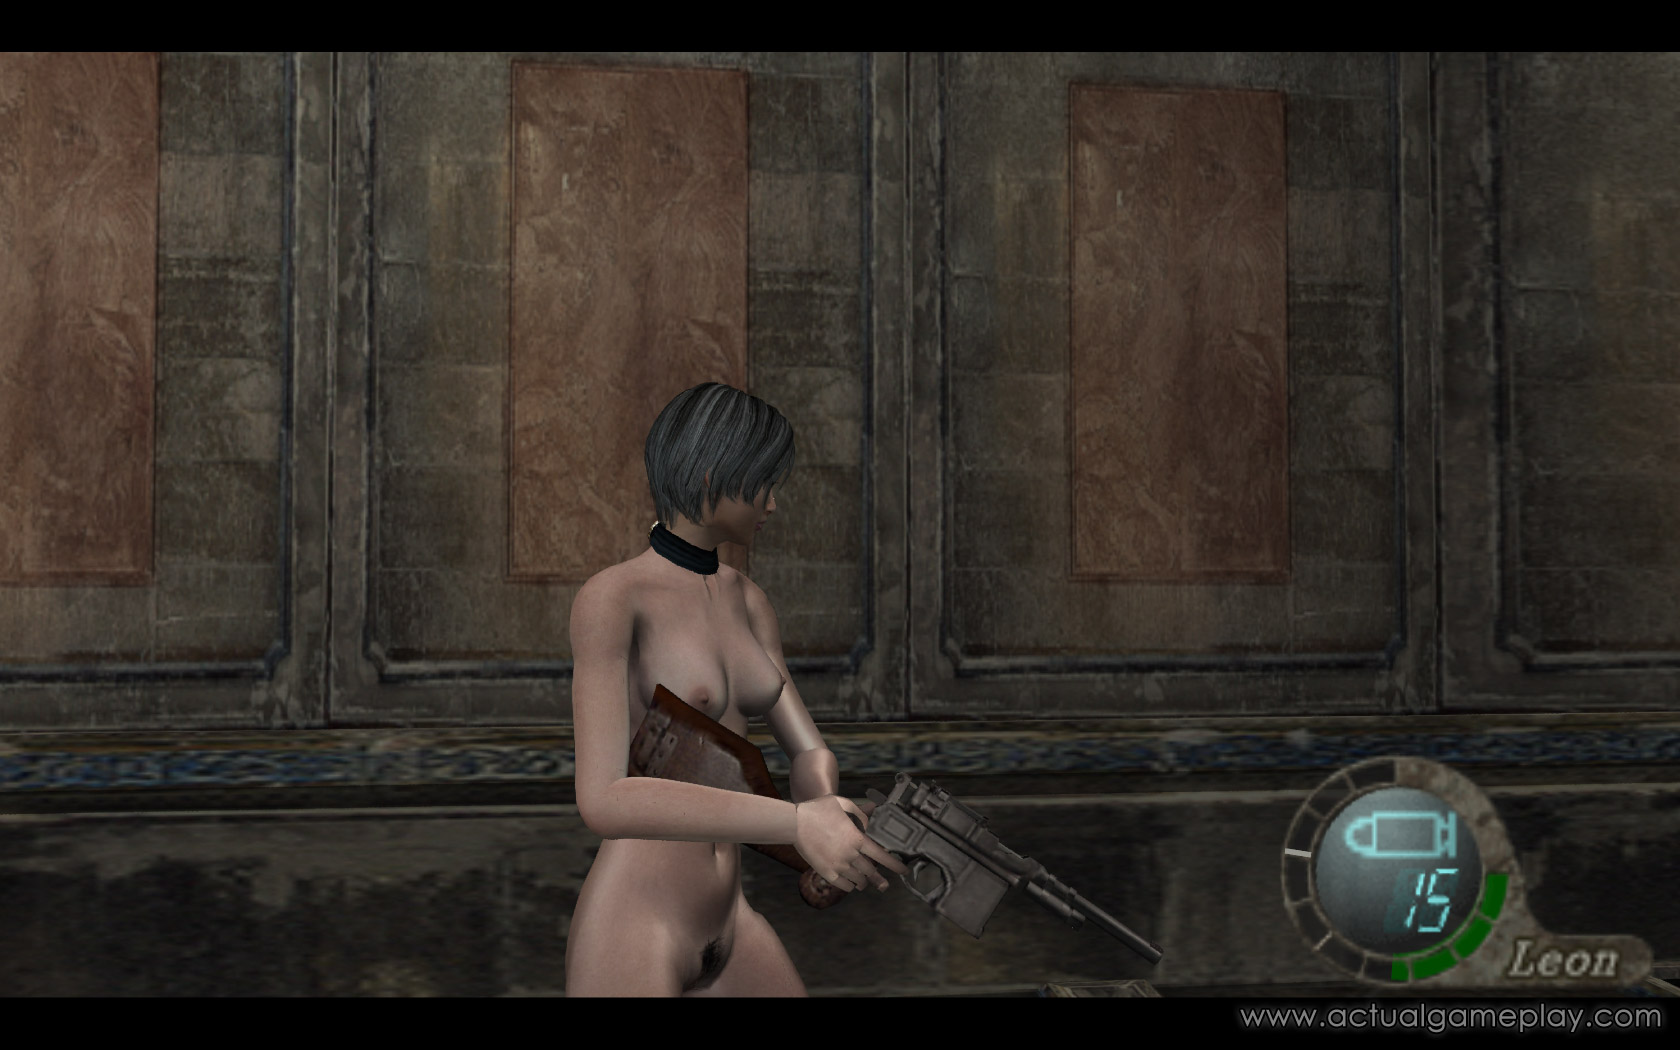 Ashley resident evil 4 nua videos porn adult vids